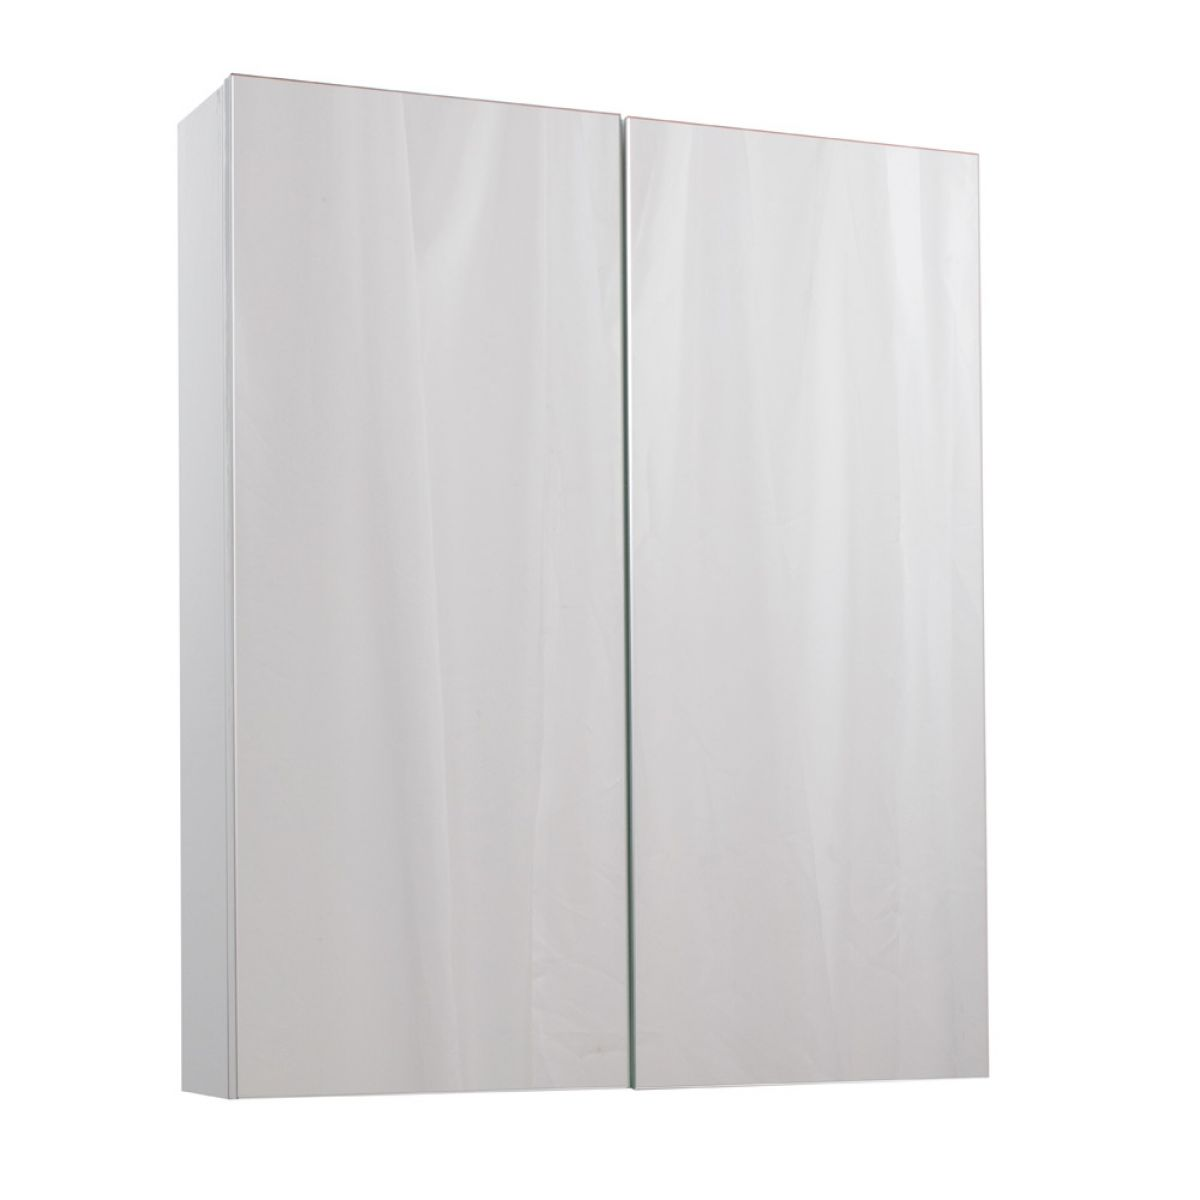 Cassellie Idon Gloss White Wall Hung Mirror Cabinet 600mm